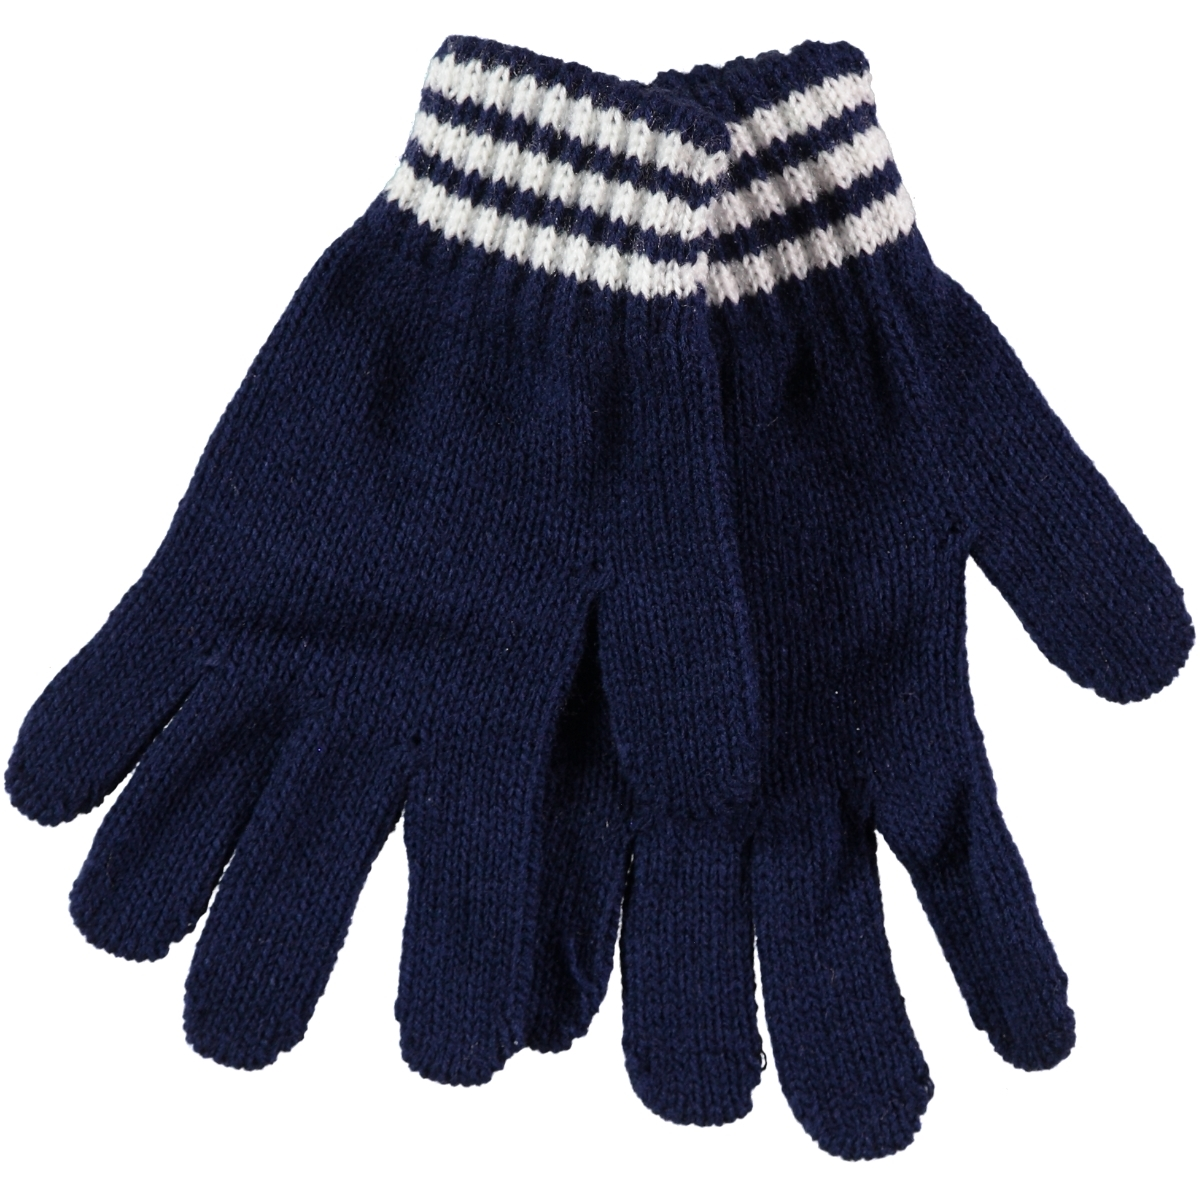 Suve Navy Blue Kid Gloves 2-5 Years